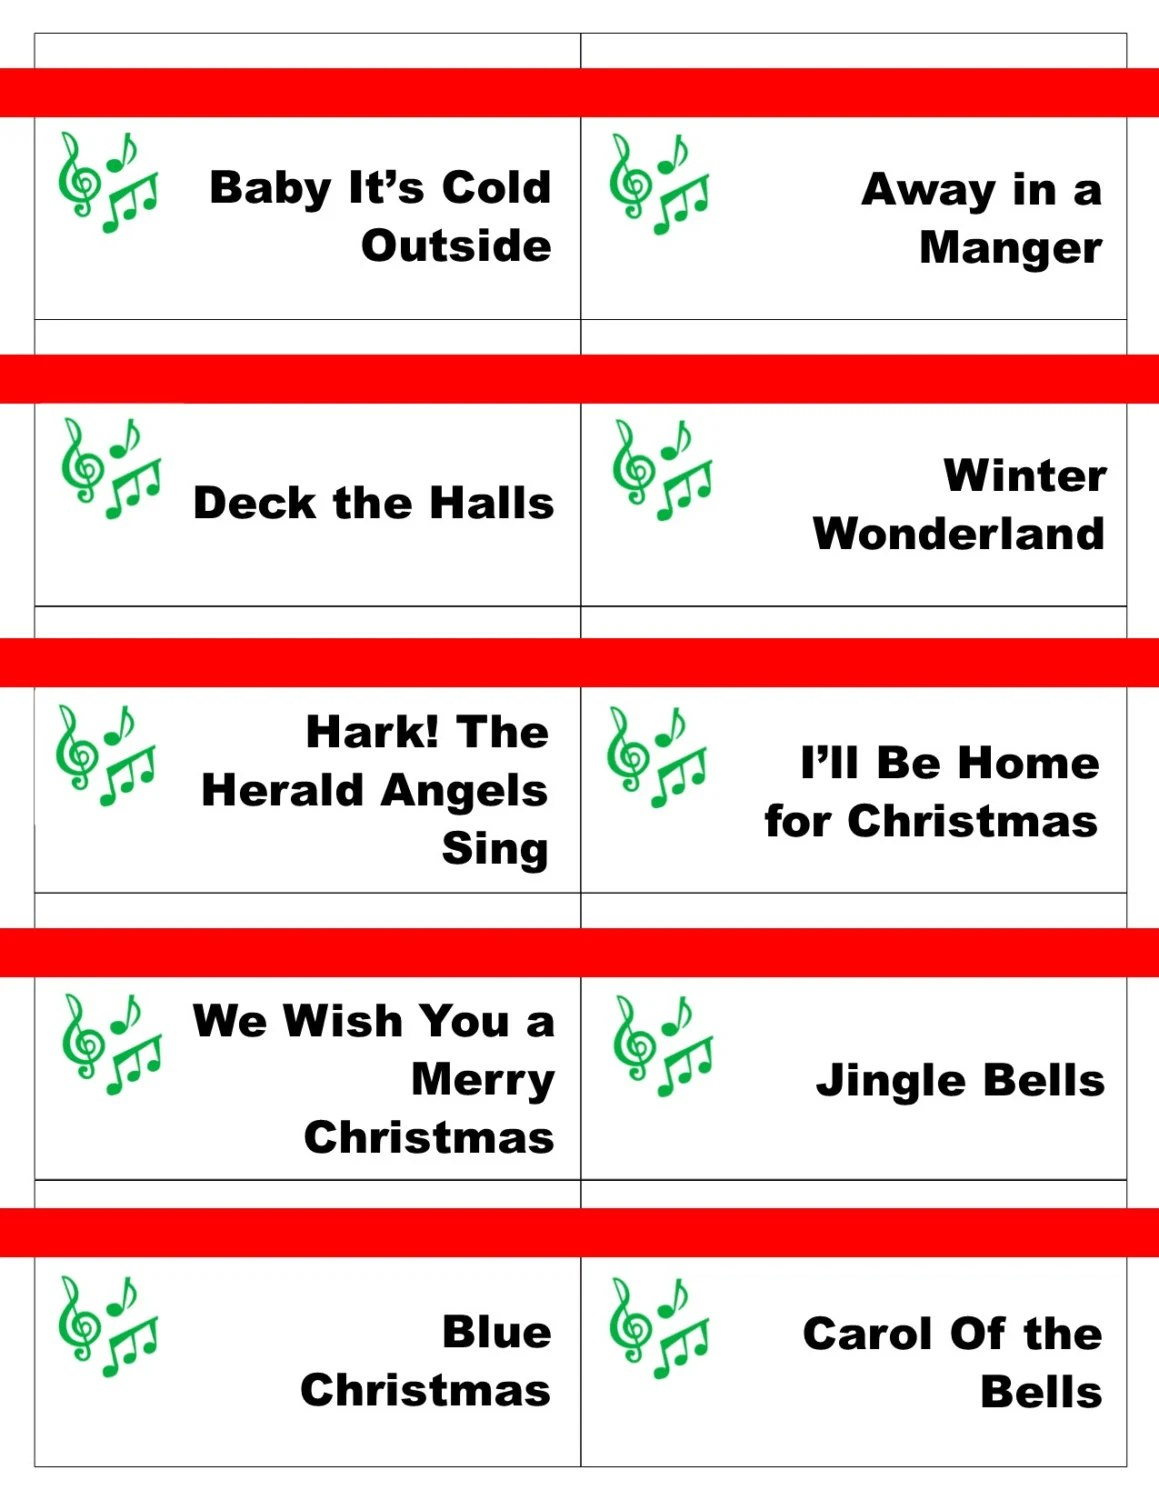 graphic relating to Christmas Carol Game Printable identified as Printable Xmas Carol Video game Playing cards For Pictionary Or5